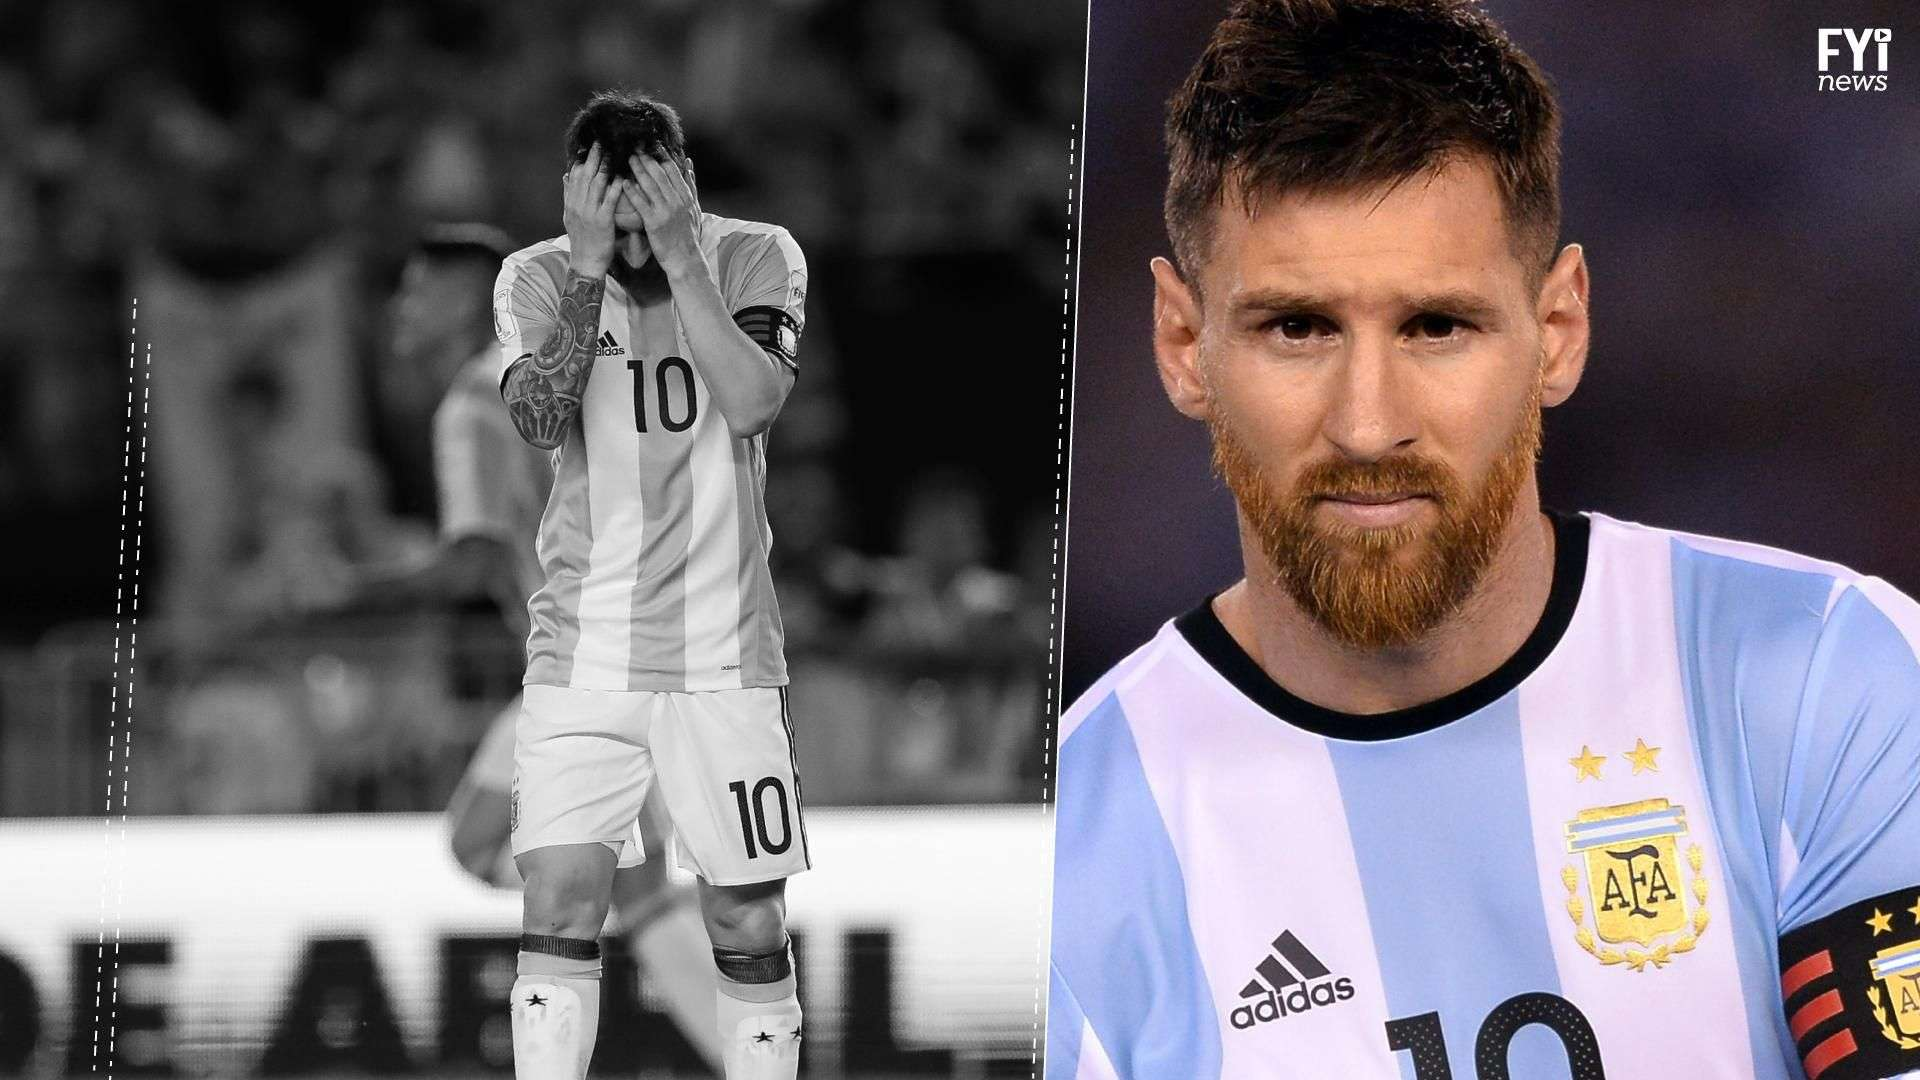 Rebeldía de Messi sale cara